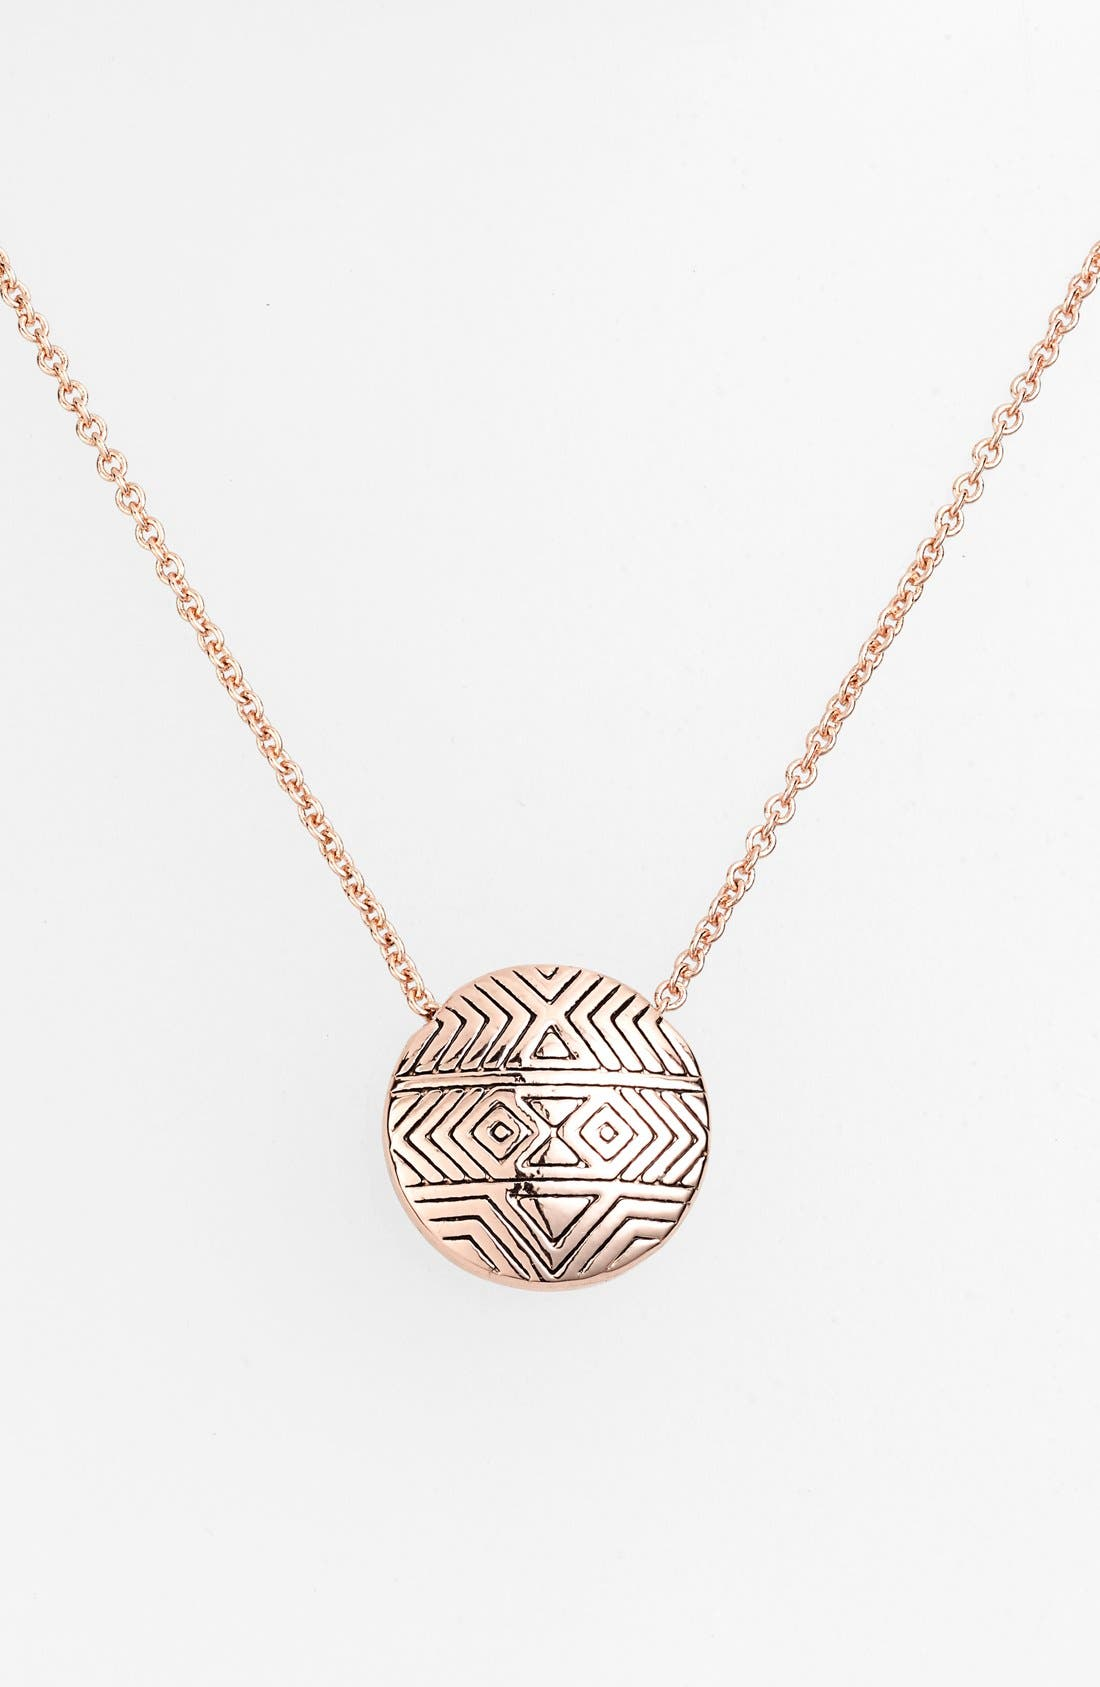 Alternate Image 1 Selected - House of Harlow 1960 'Tholos' Engraved Pendant Necklace